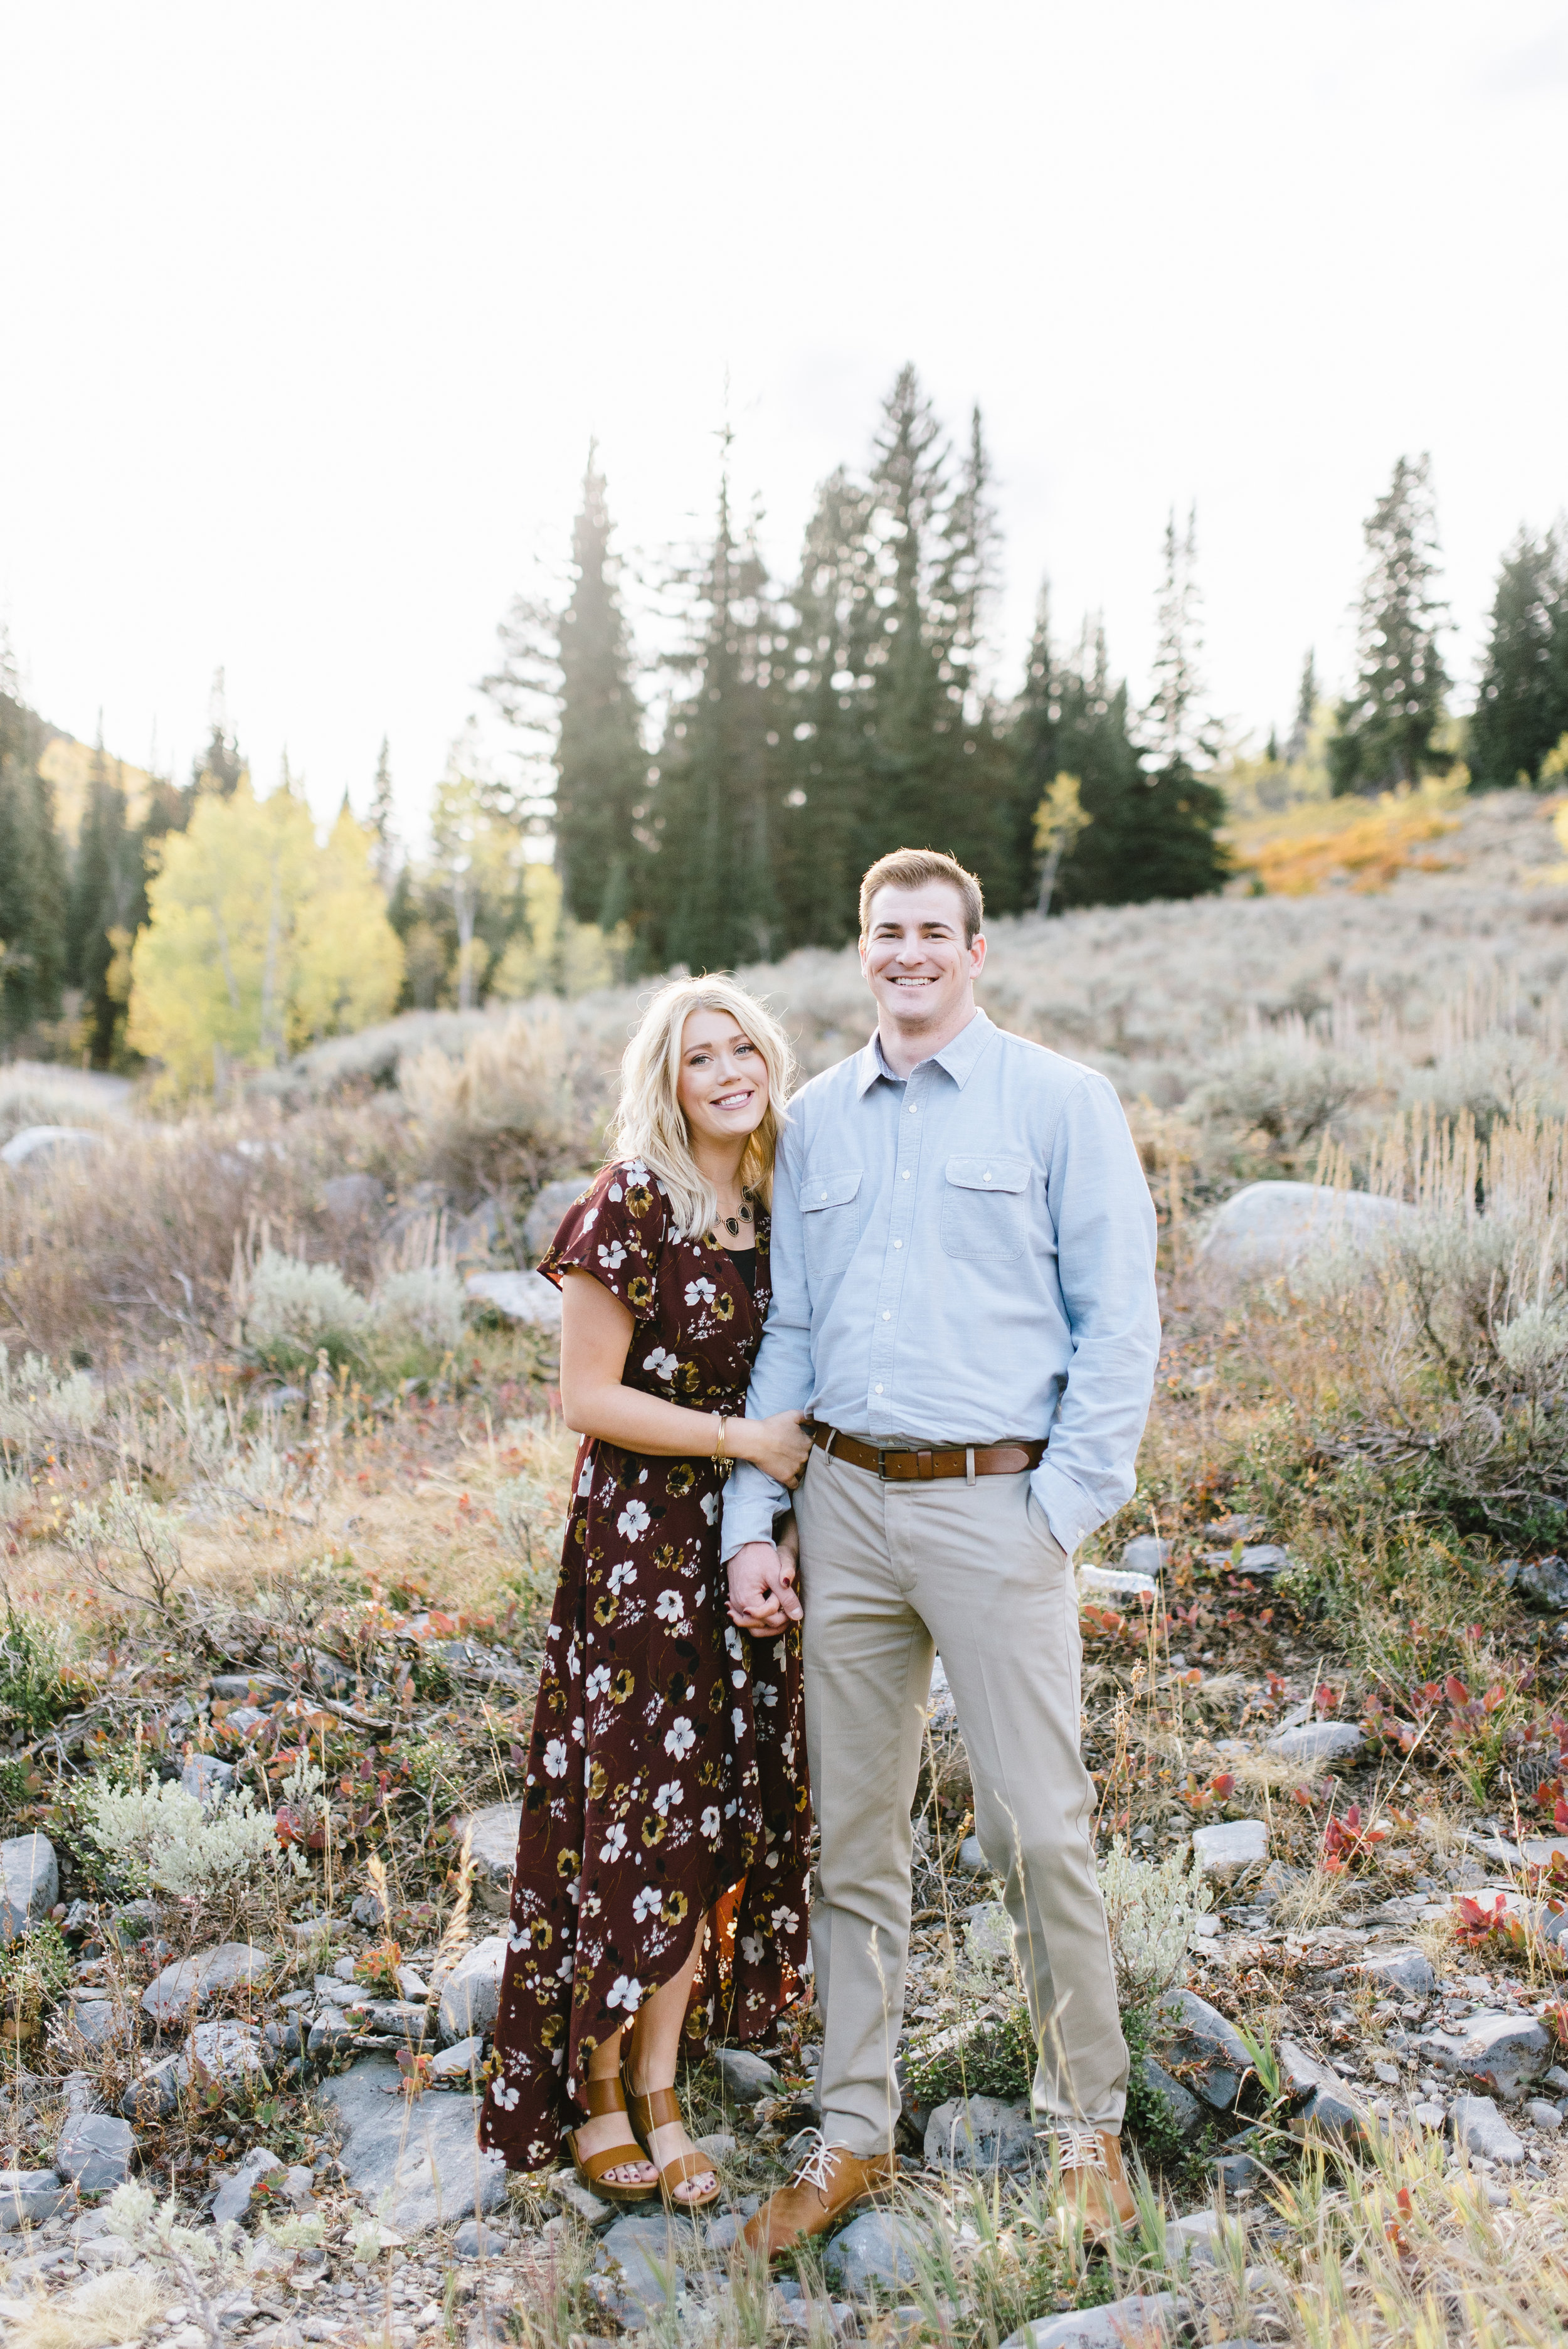 Taylor+Joe Engagements-20.jpg